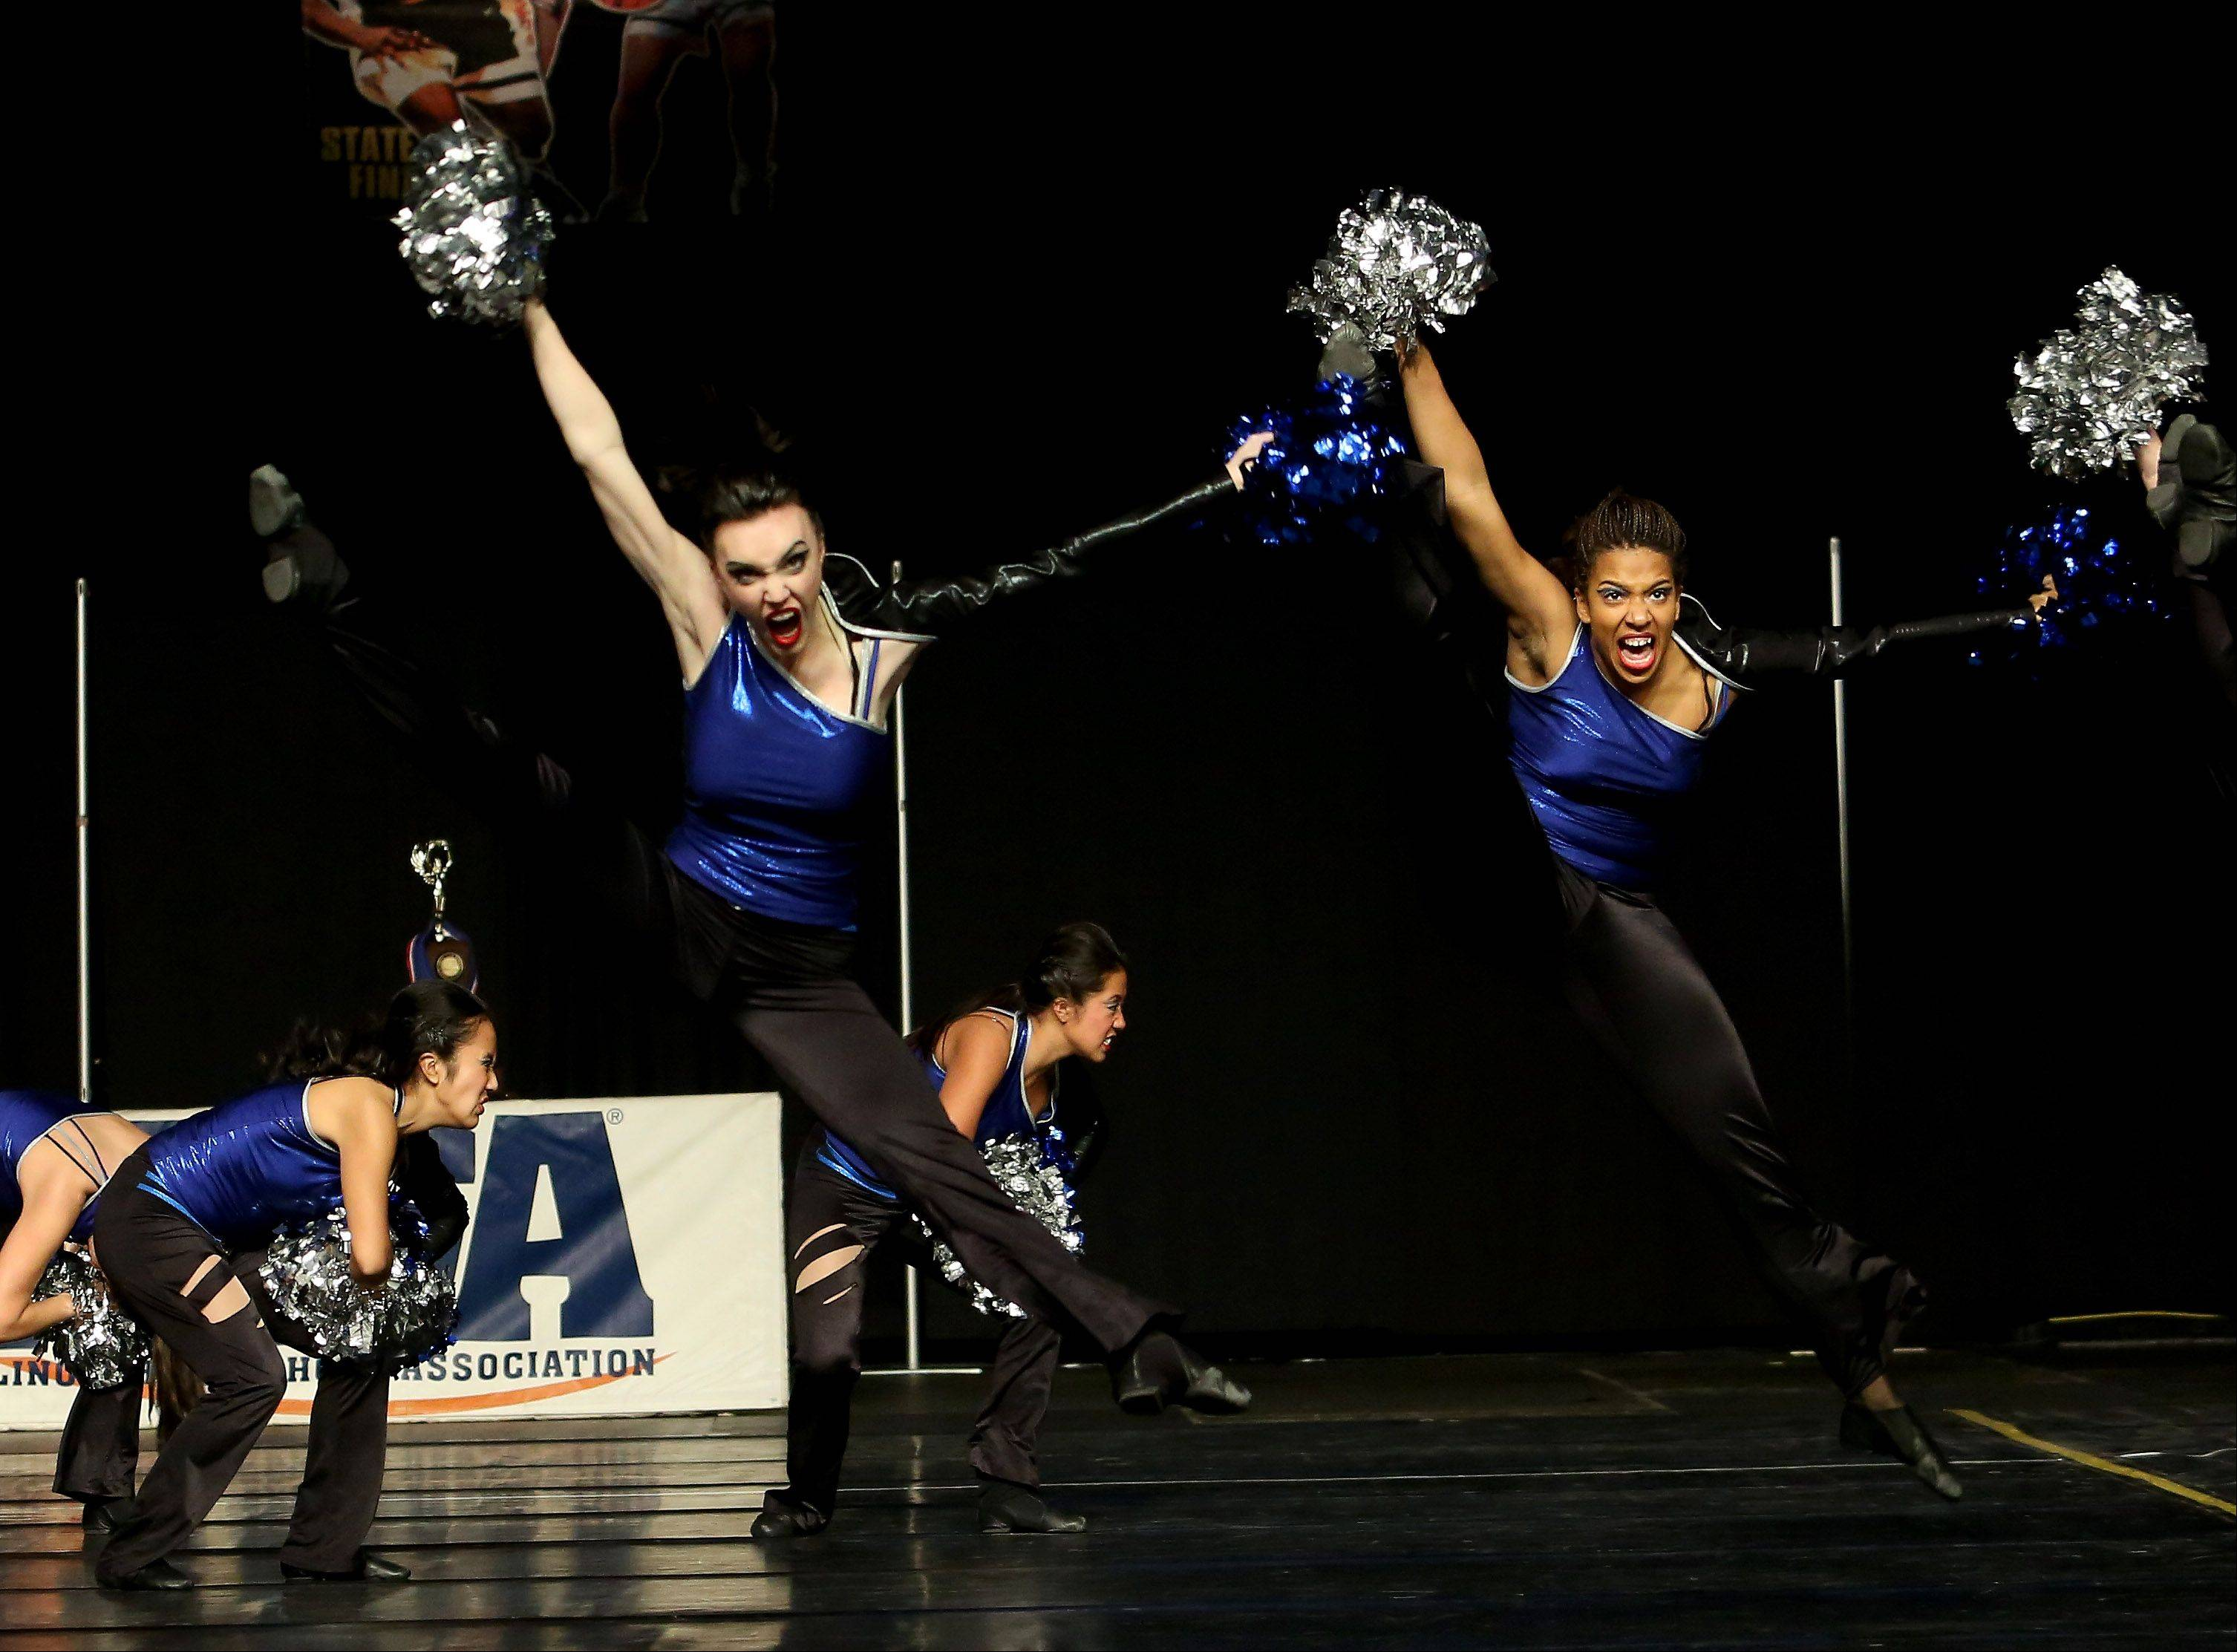 Downers Grove South performs in the 3A division of the Competitive Dance State Finals on Saturday in Bloomington.